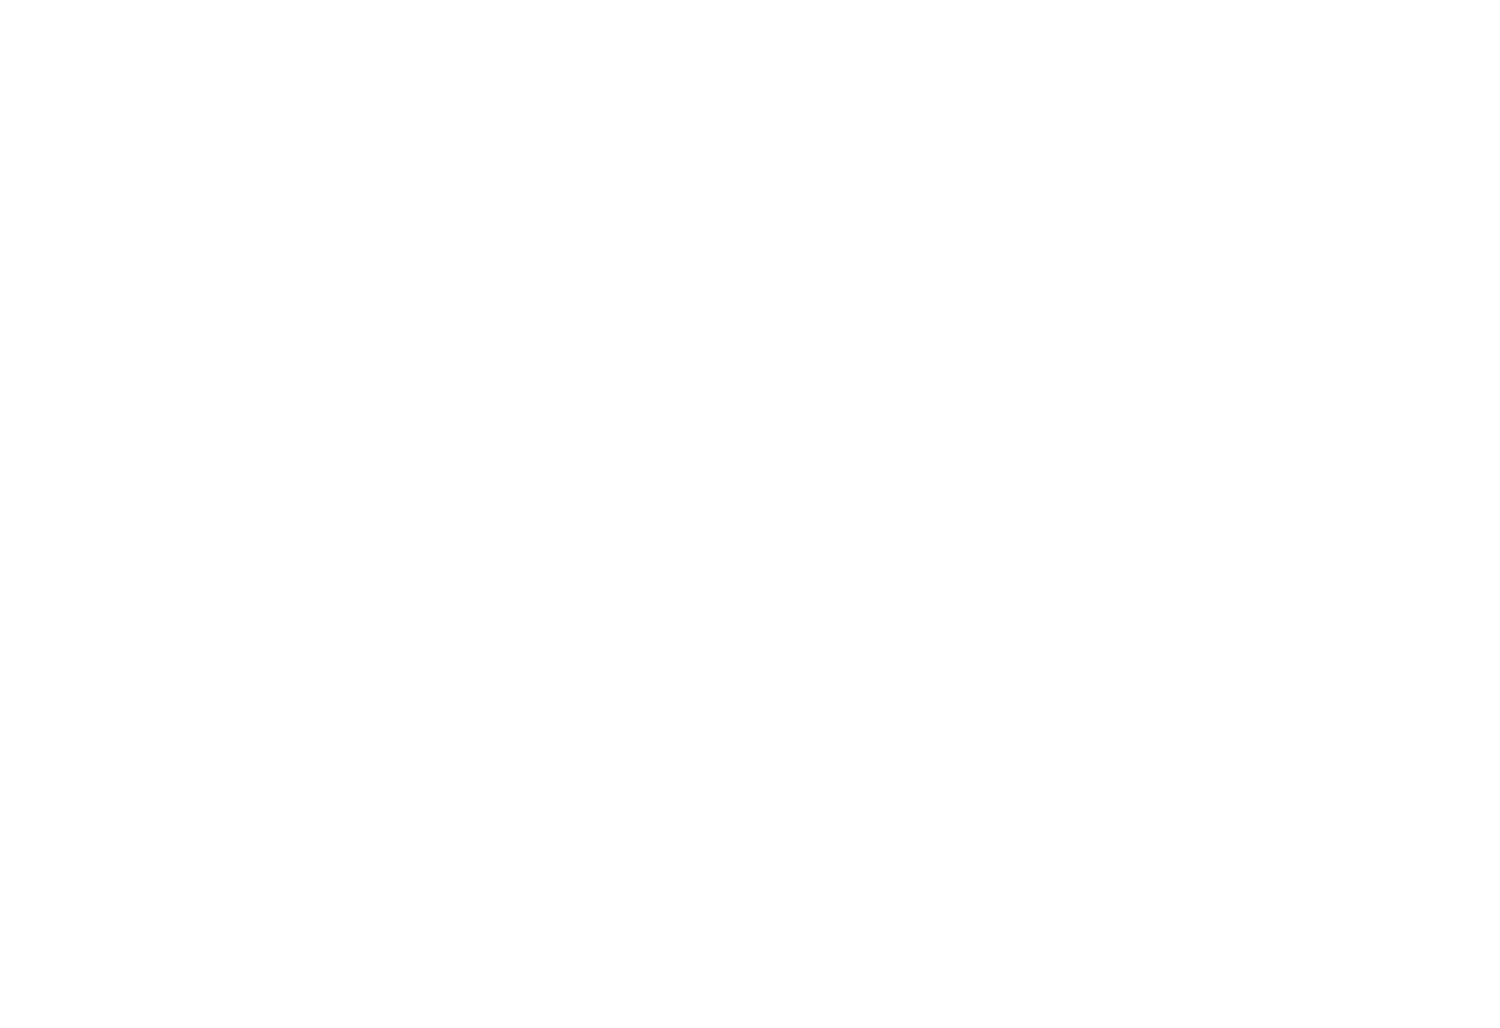 The Glowsticks